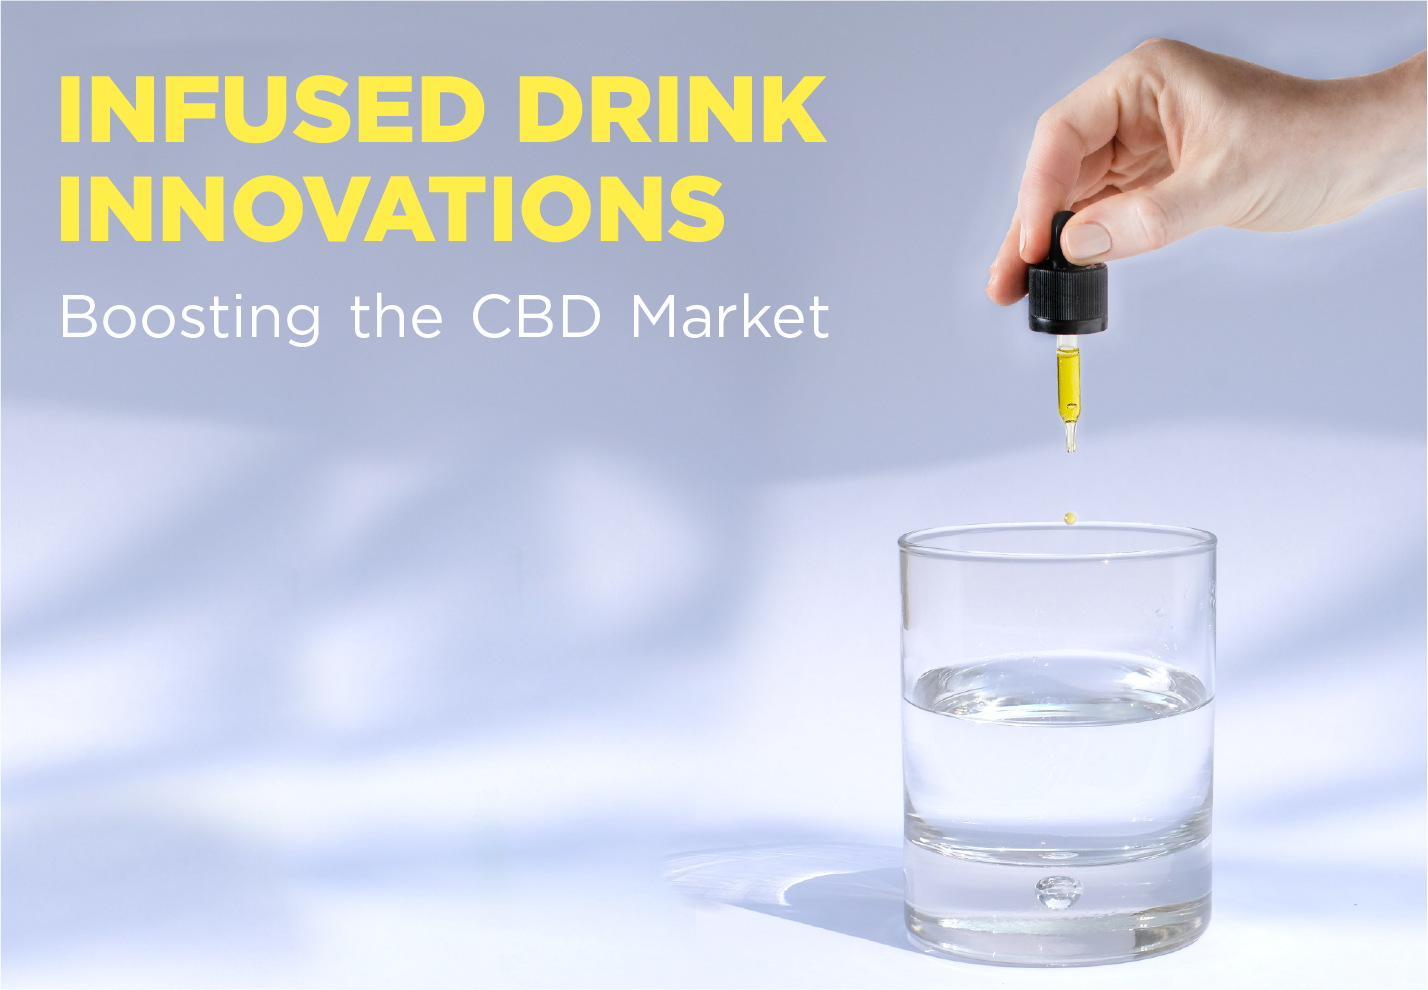 Infused Drink Innovations are Boosting the CBD Market